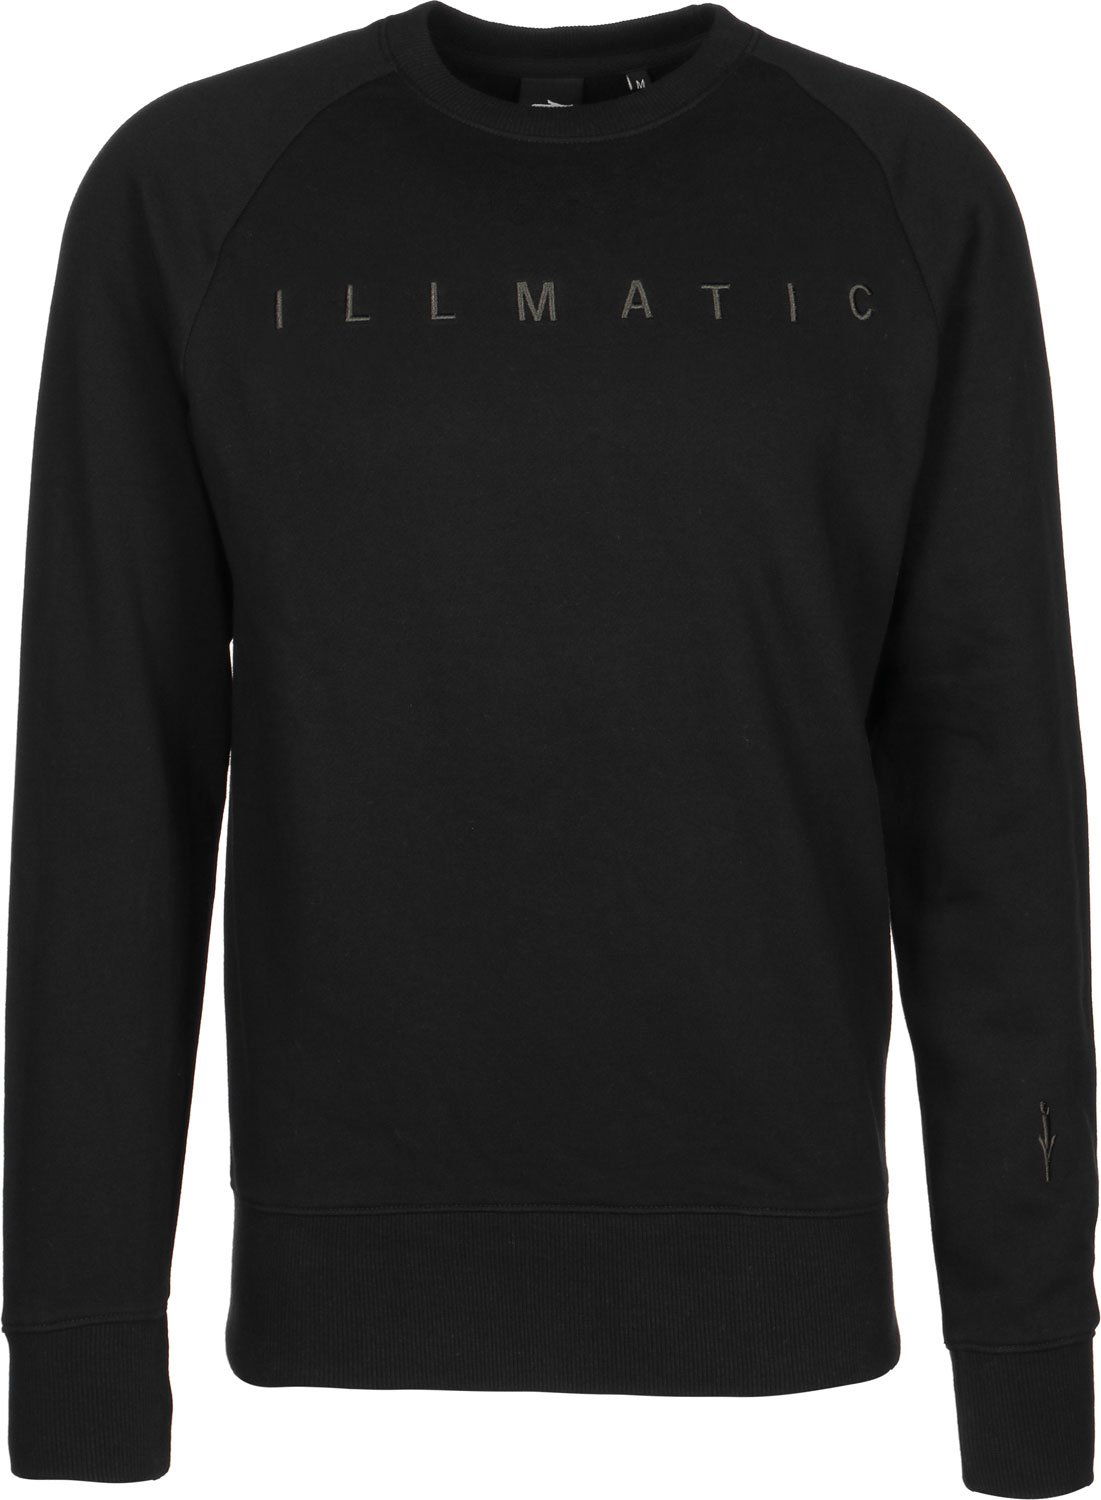 ILLMATIC Herren Word Sweater Sweatshirts